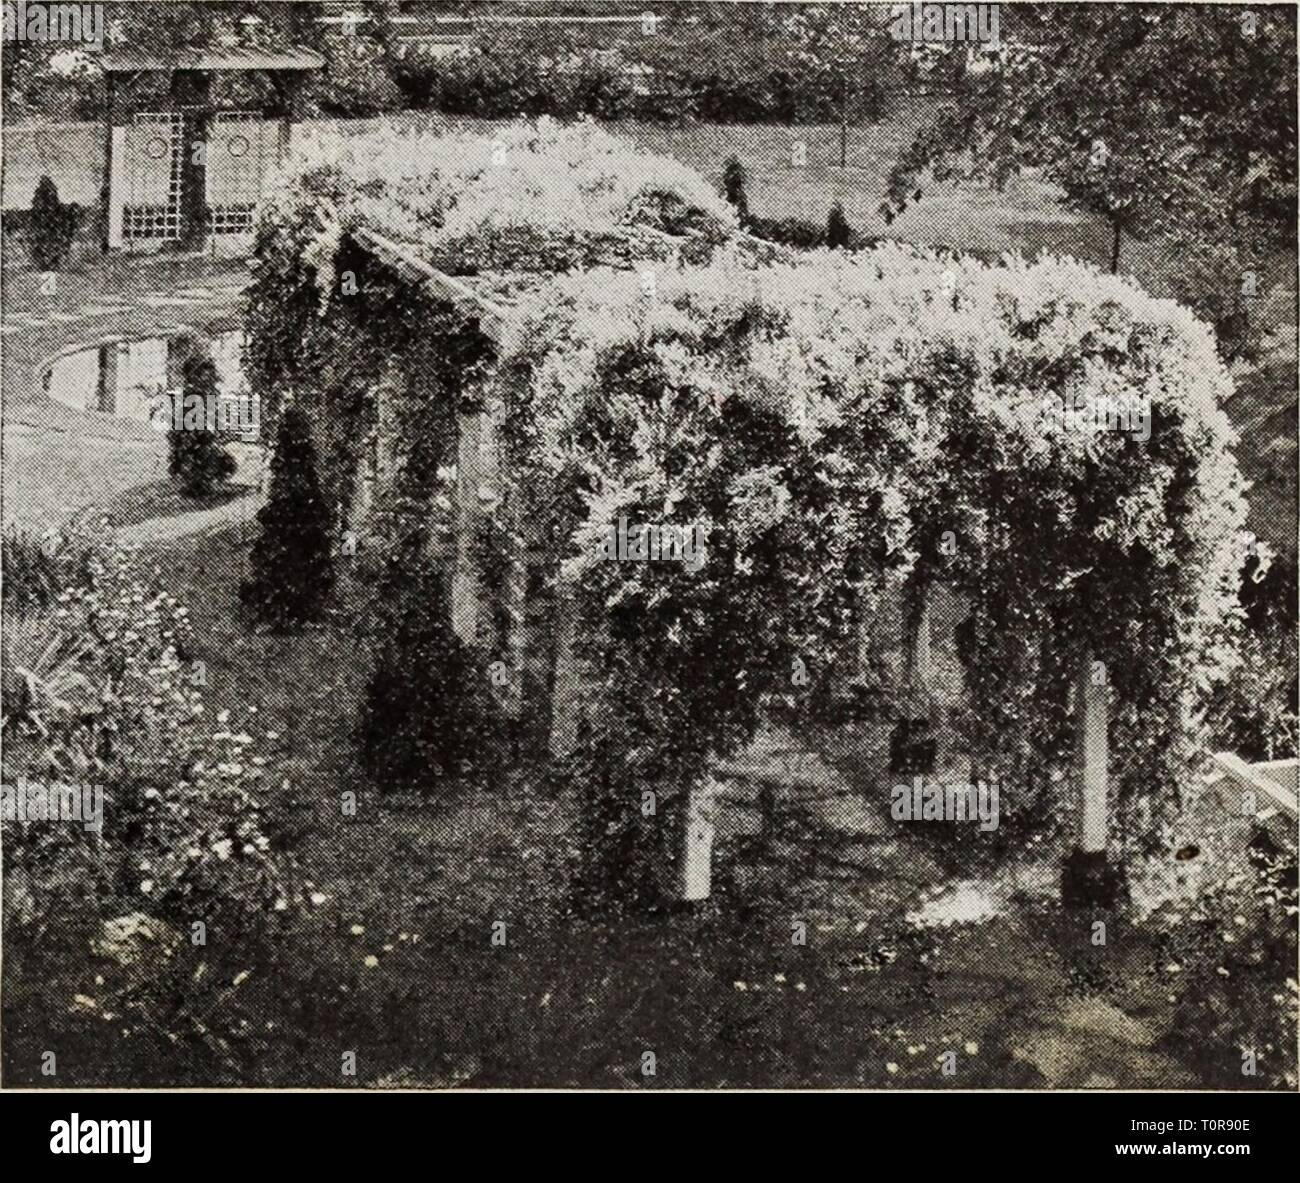 Dreer's bulbs plants, shrubs and Dreer's bulbs plants, shrubs and seeds for fall planting : autumn 1937  dreersbulbsplant1937henr Year: 1937  Clematis montana undulata Euonymus ® Radicans acutus. A strong-growing variety with long, narrow, dark green leaves veined with gray, excellent as a ground cover. coloratus. Same as above but with theleaves tinted purplish red particular- ly on the underside. — kewensis. A A variety with very small dark green foliage. A valuable plant for the rockery. — variegatus. A beautiful small-leaved green and white variegated form. — vegetus(Evergreen Bittersweet) - Stock Image